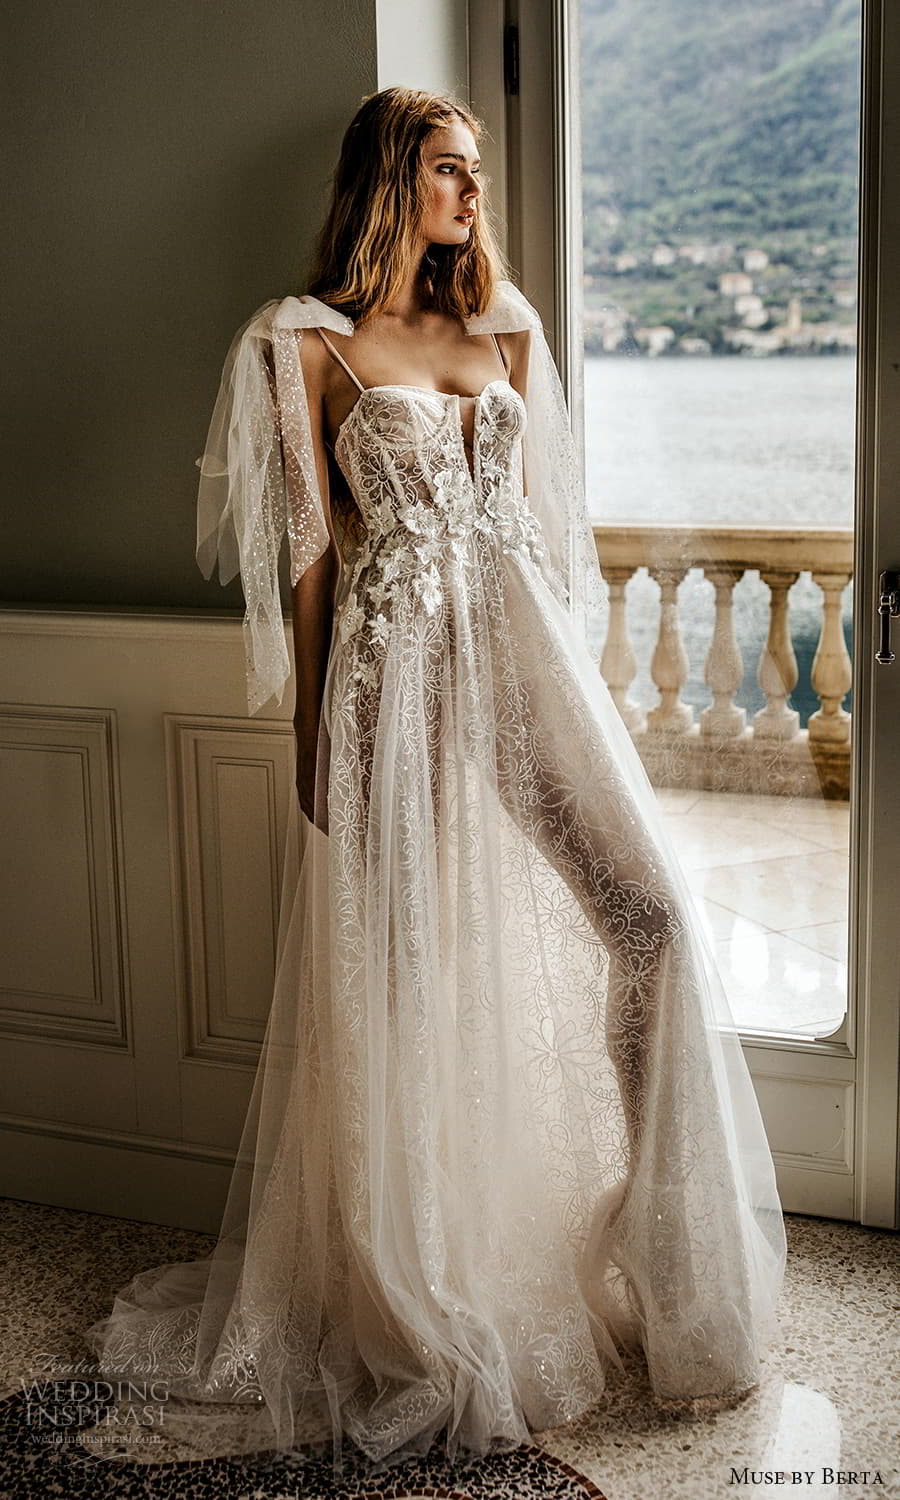 muse by berta spring 2022 bridal sleeveless thin straps semi sweetheart neckline fully embellished a line ball gown wedding dress chapel train (1) mv